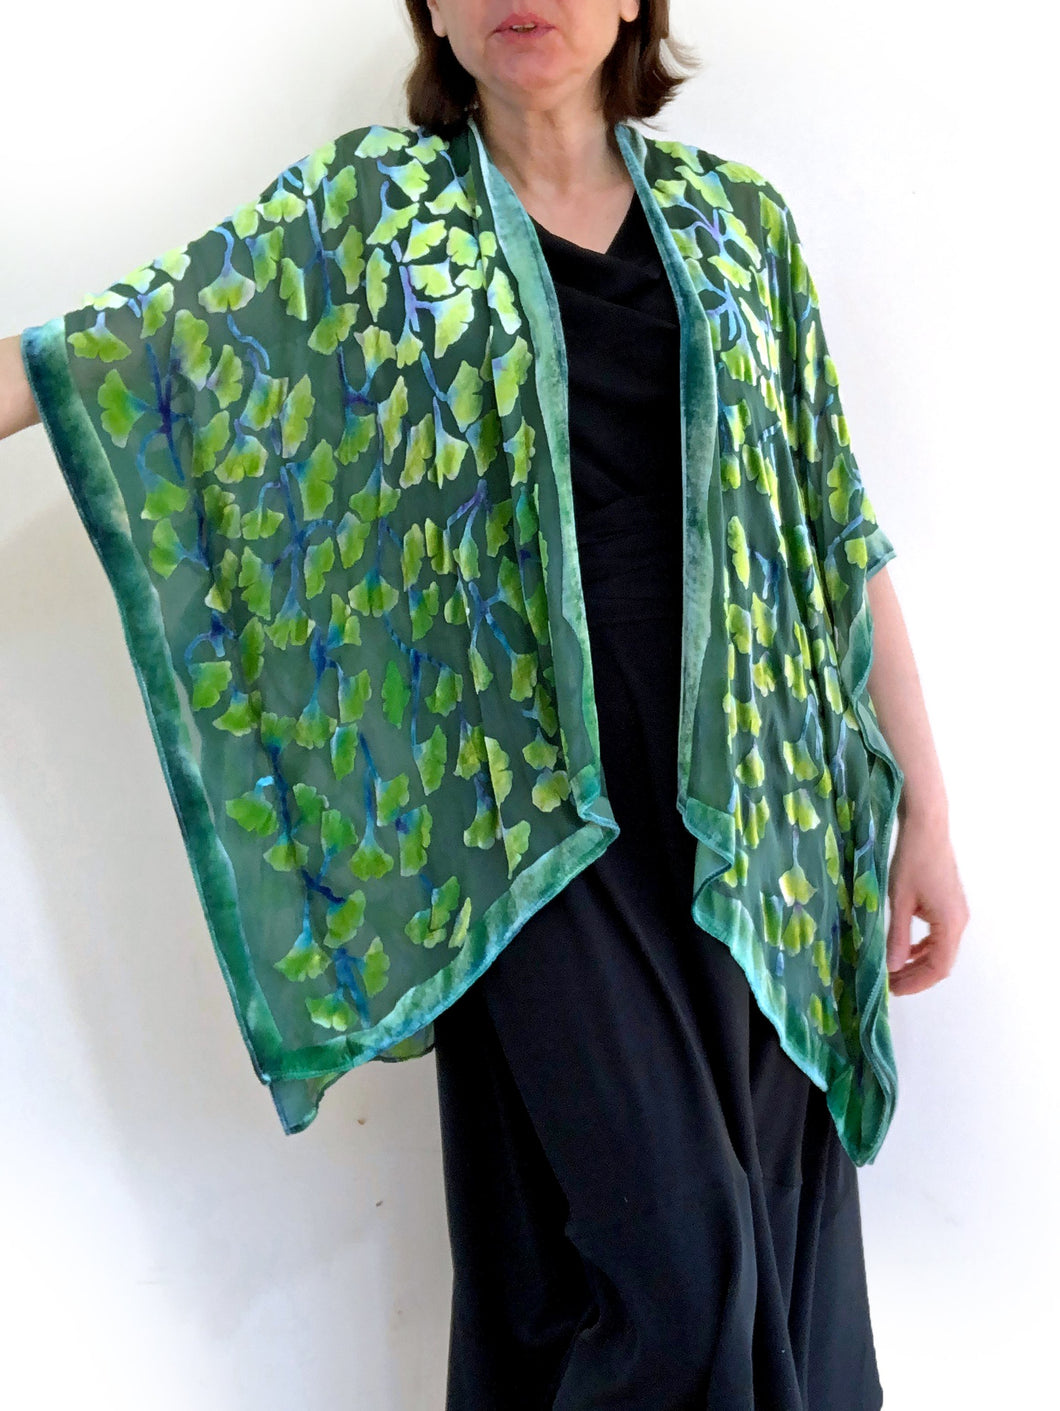 modeling green gingko leaf devoré or burnout velvet kimono jacket that is hand painted. Worn over back dress.